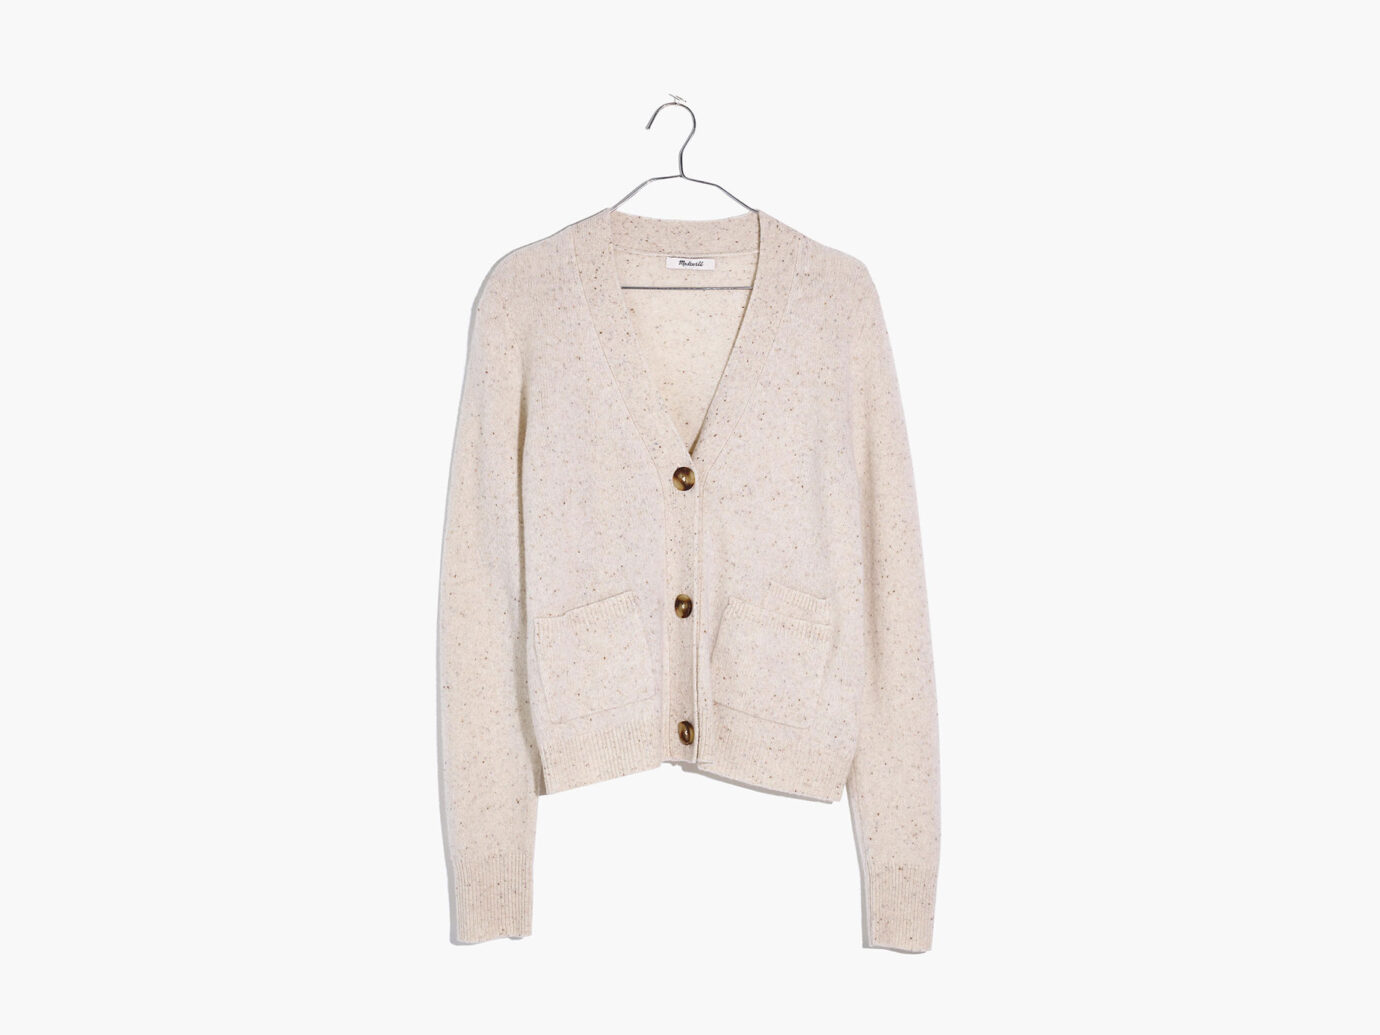 Madewell Shrunken Cardigan Sweater